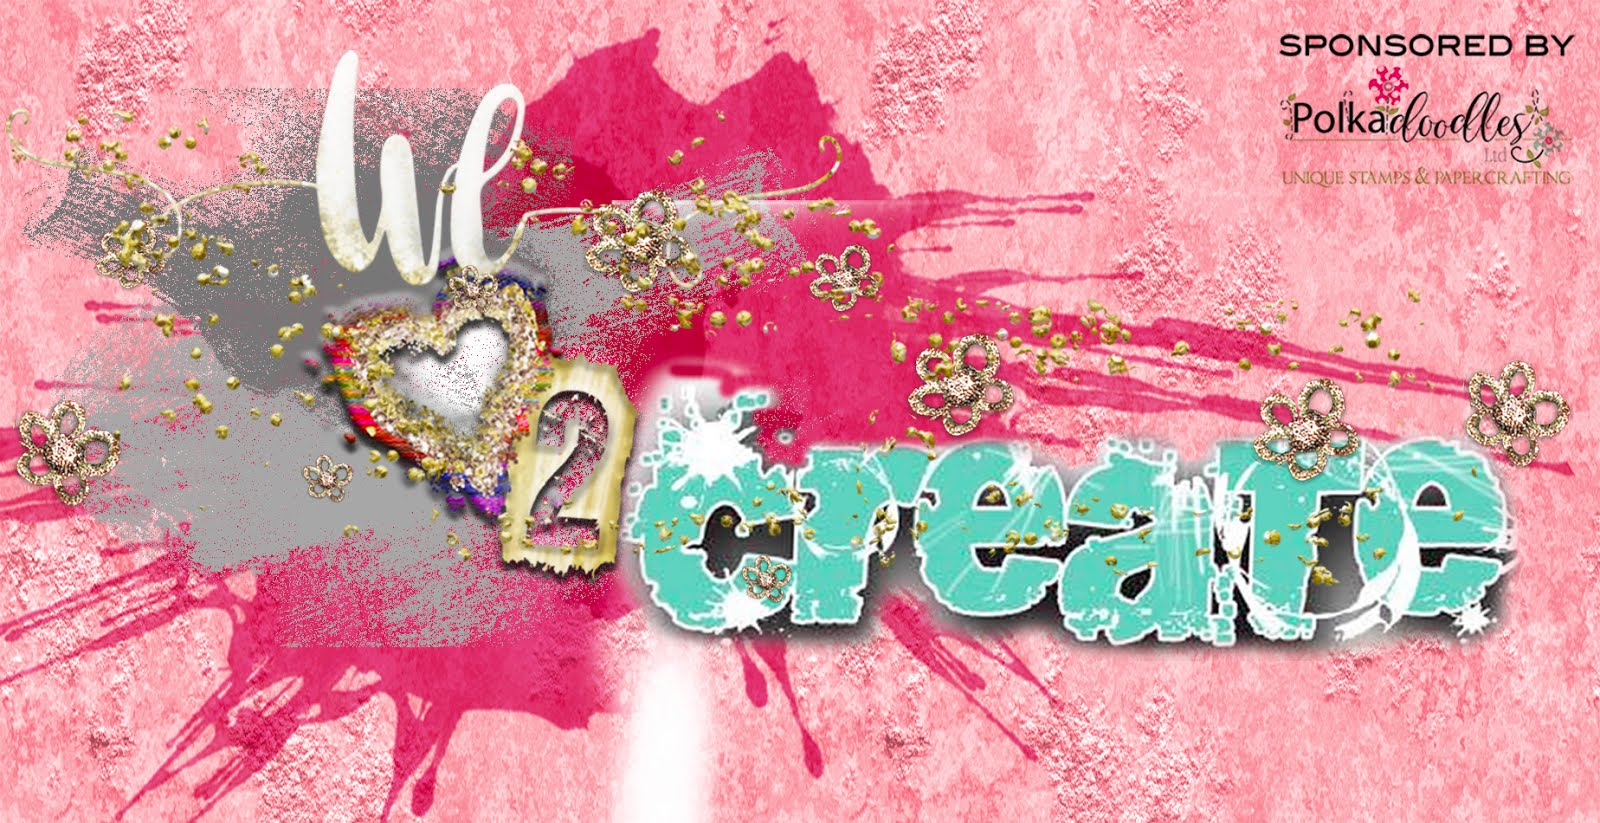 We Love to Create mixed media Challenge Blog...sponsored by Polkadoodles